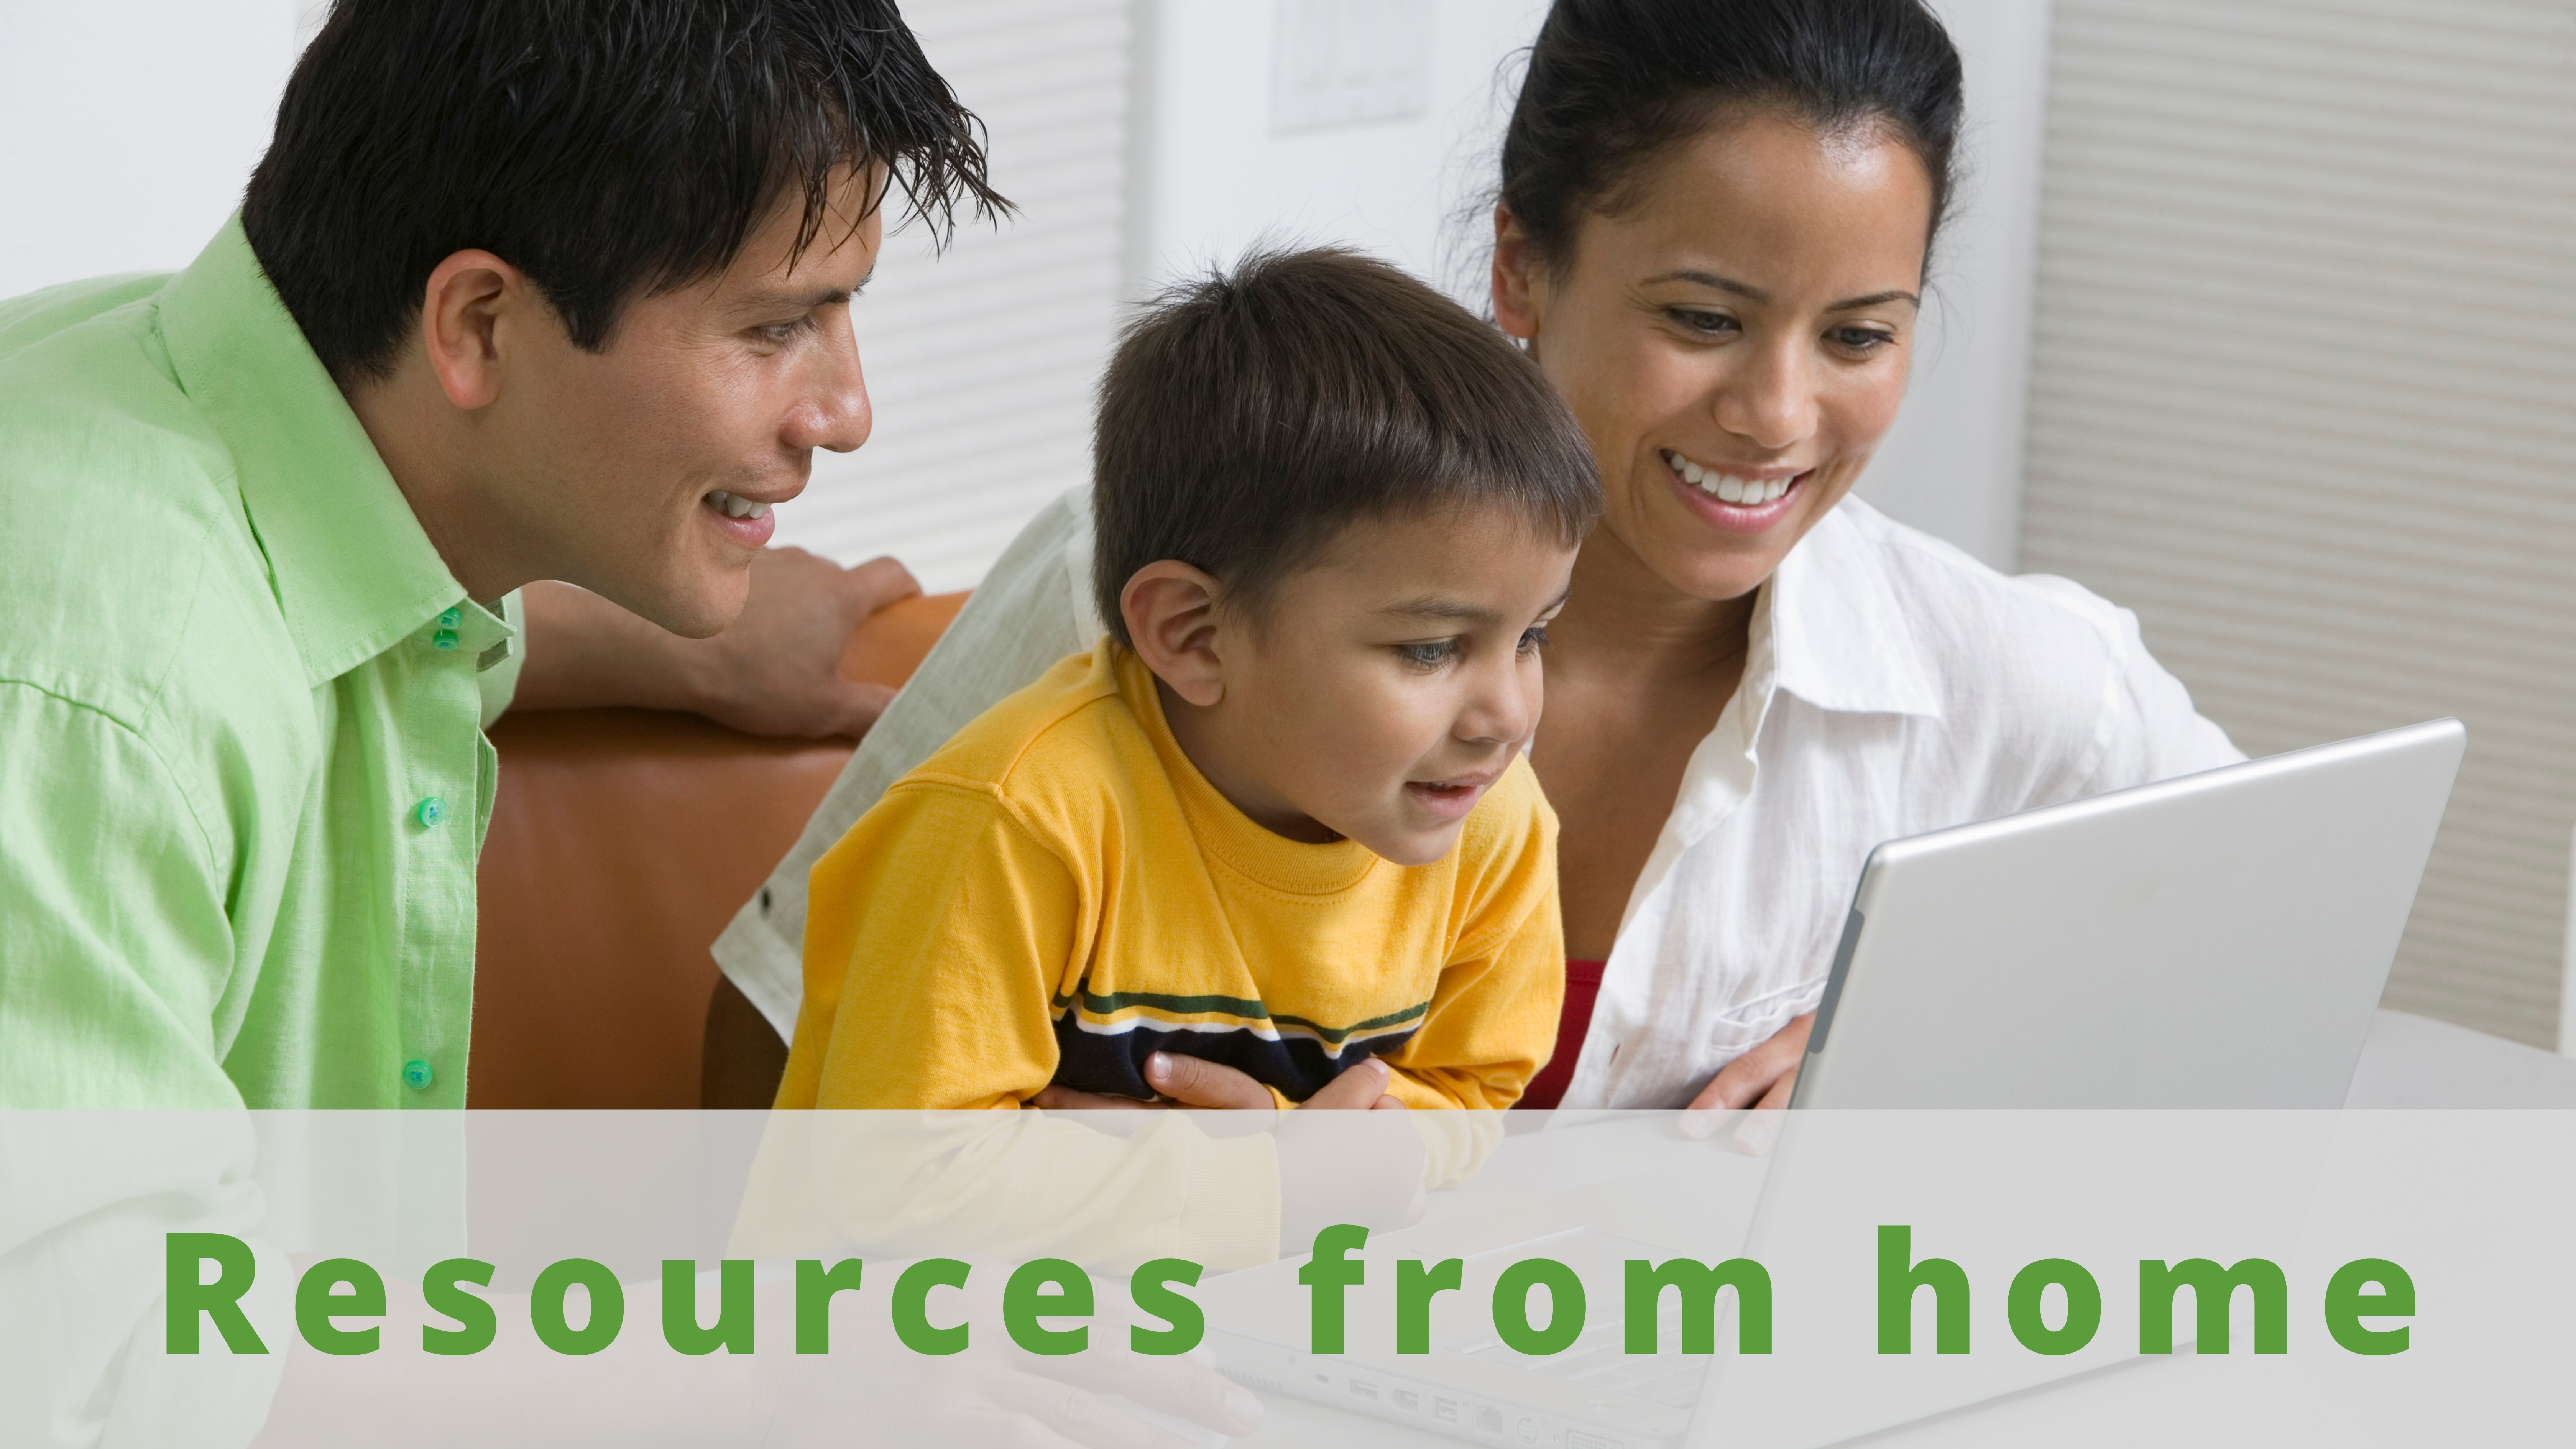 Resources from Home - Resources from home